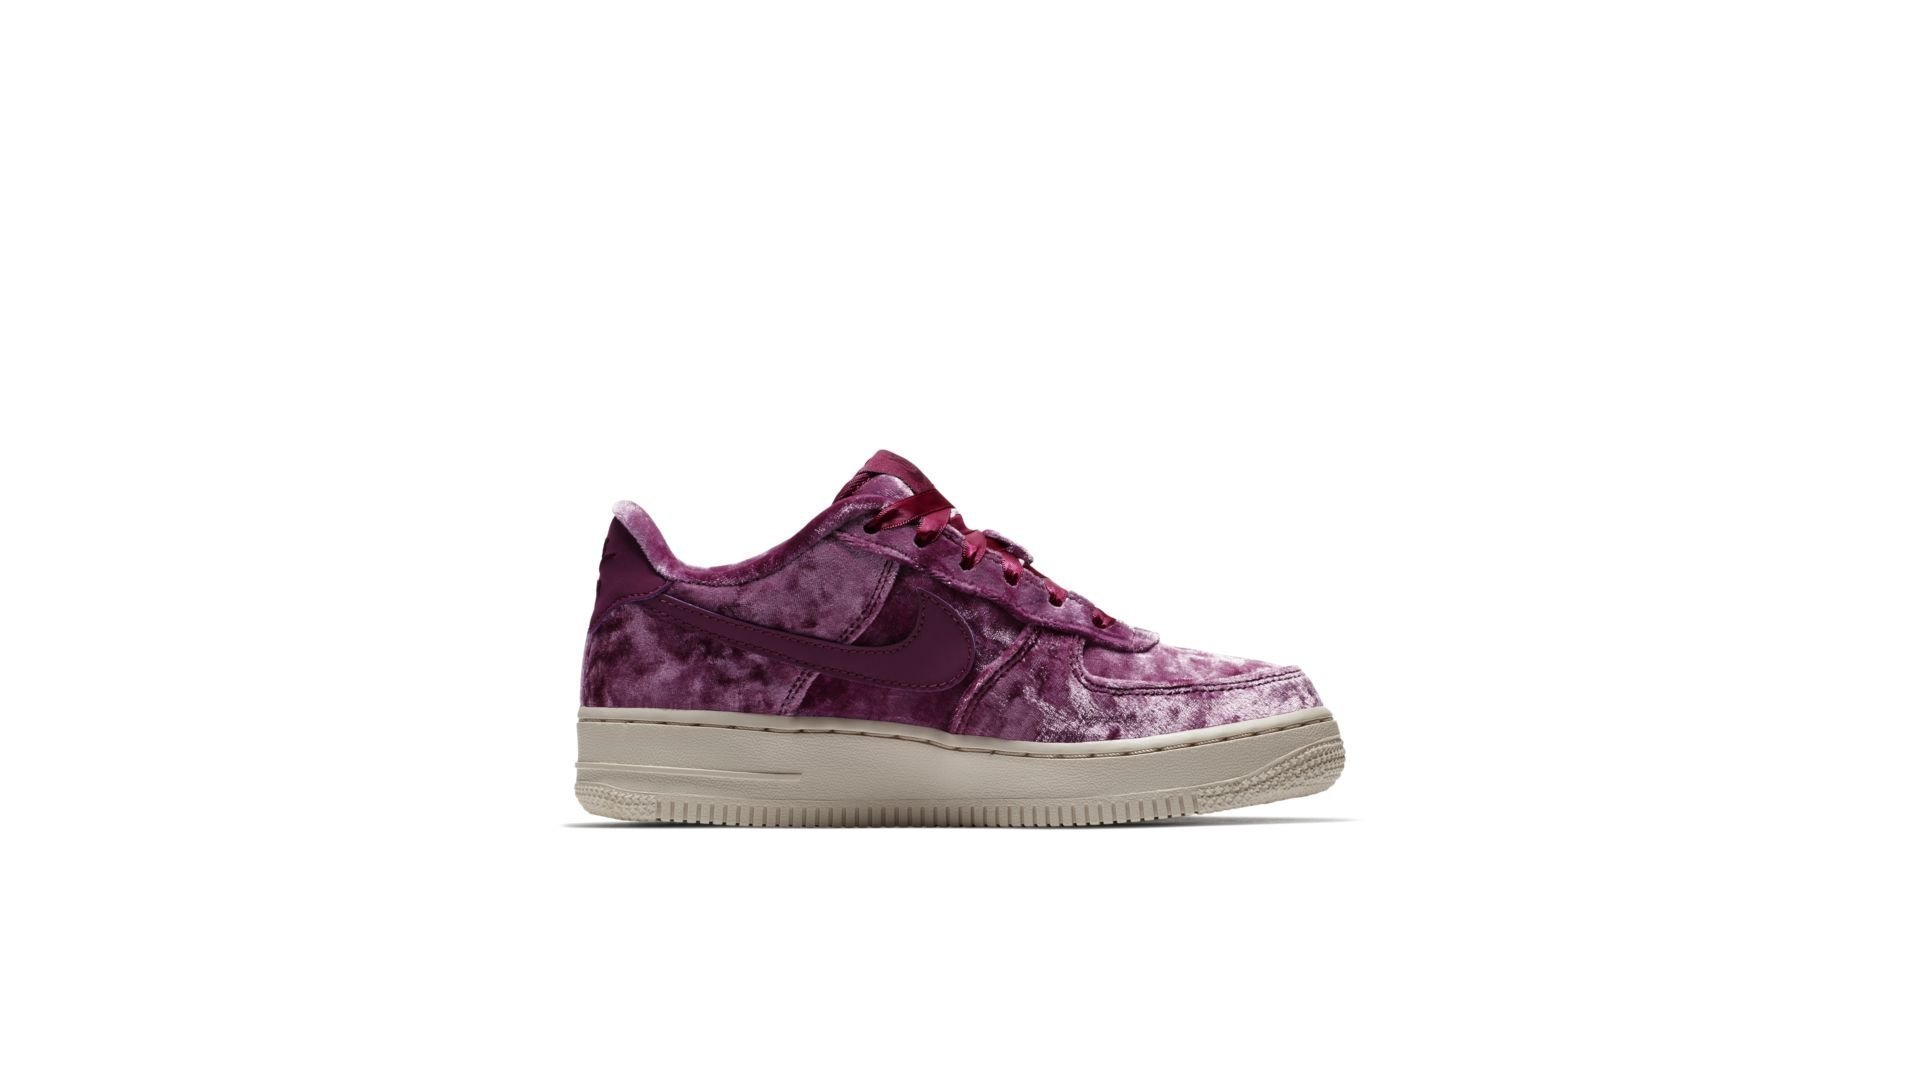 Nike Air Force 1 Low Crushed Velvet (GS) (849345-601)